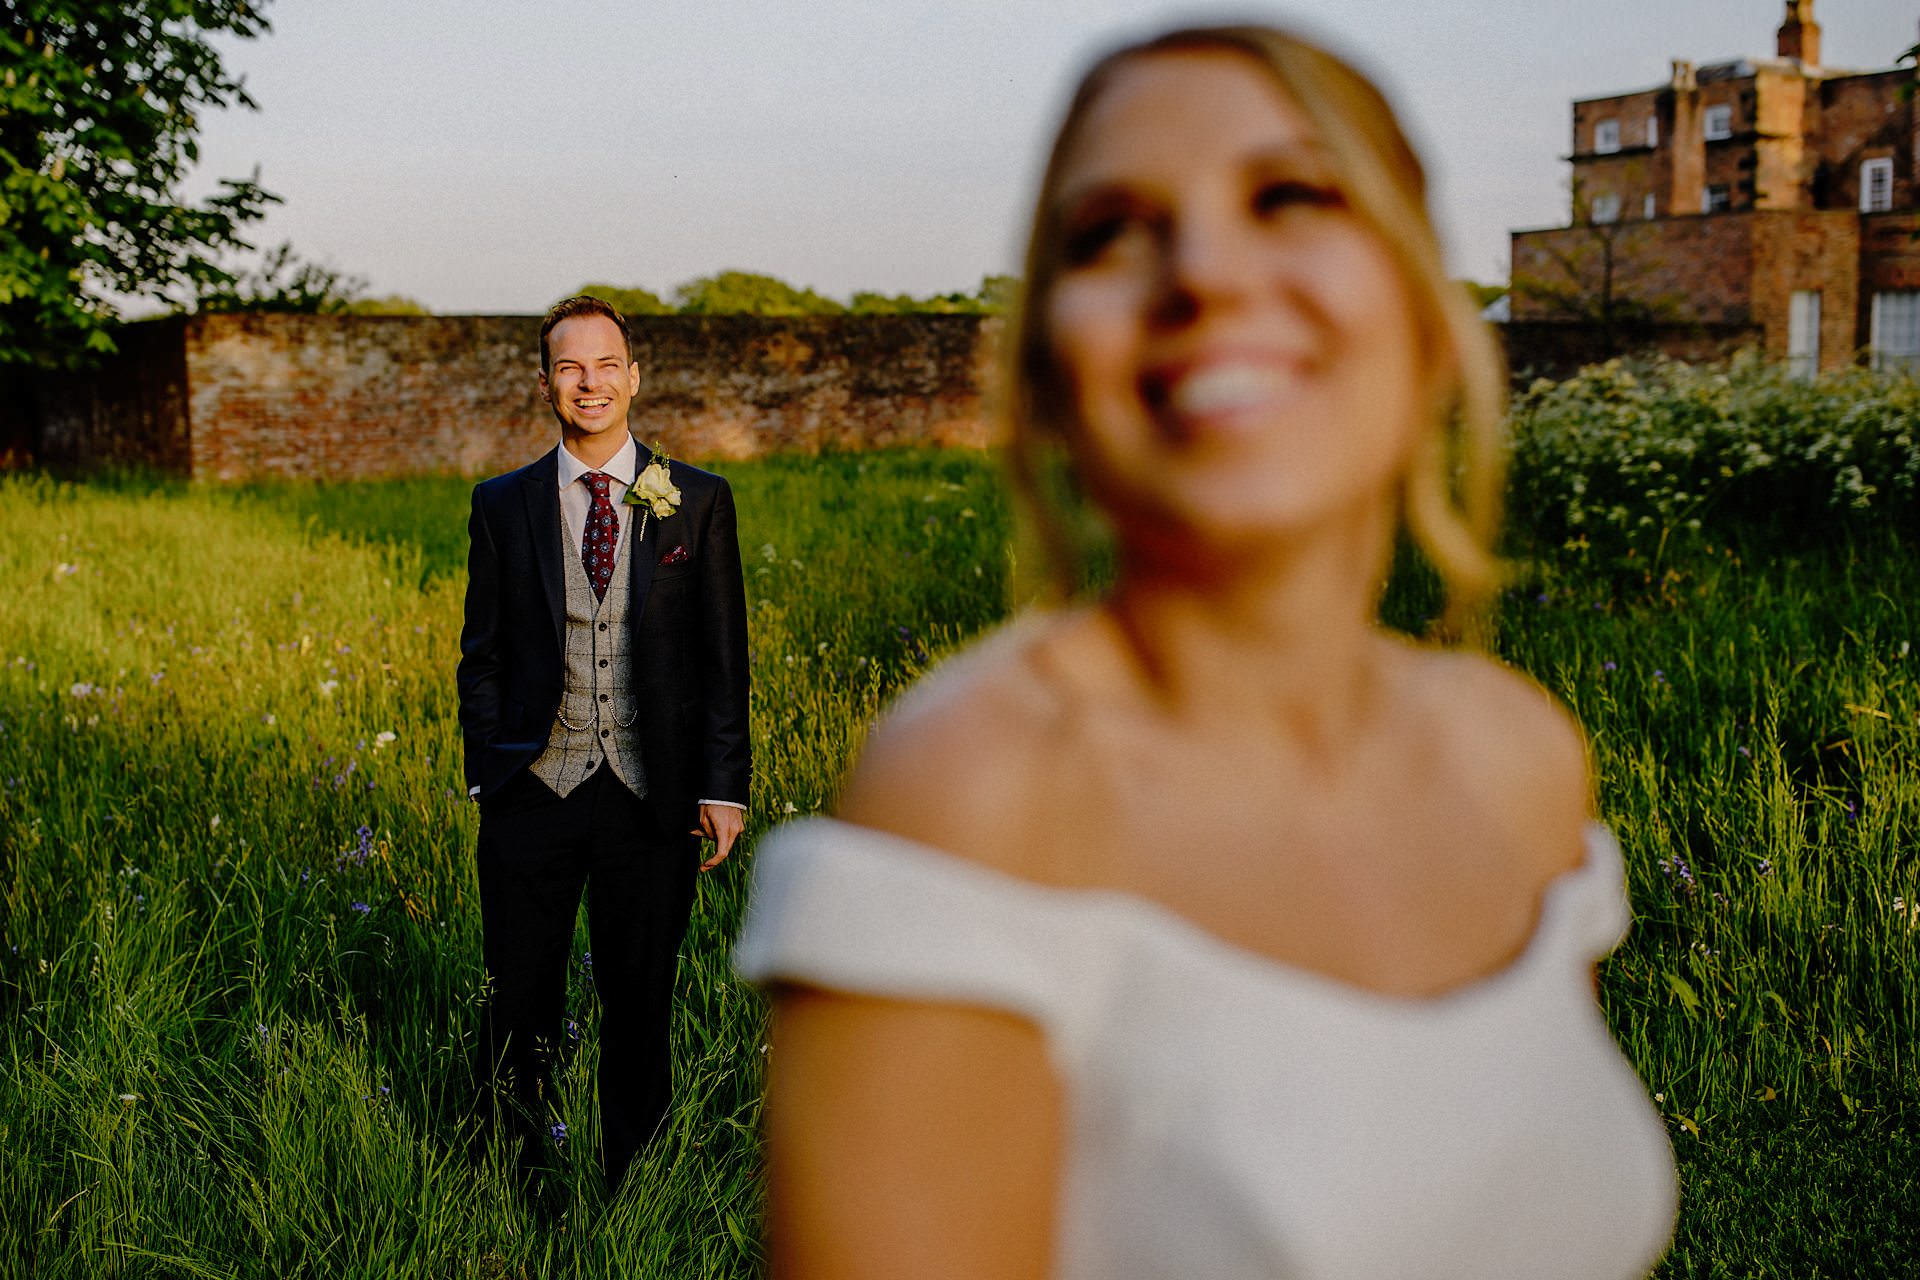 groom laughing, bride out of focus